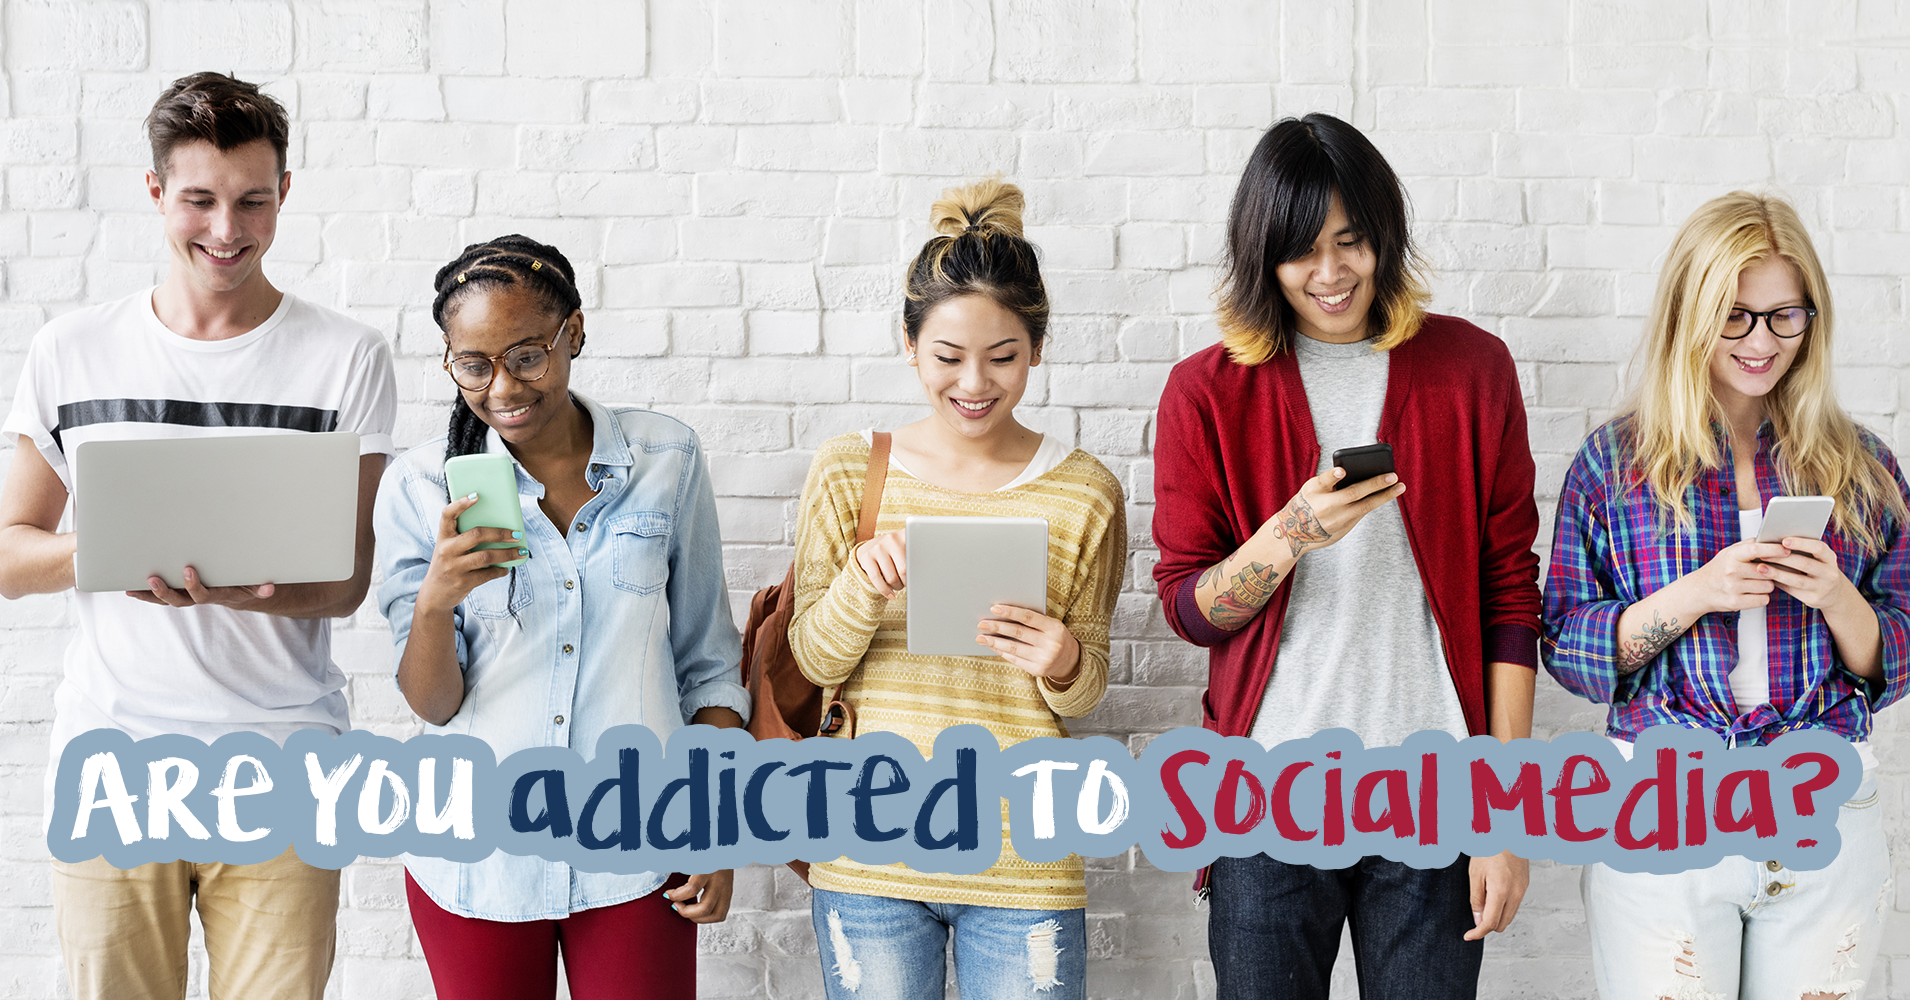 how to tell if you are addicted to social media